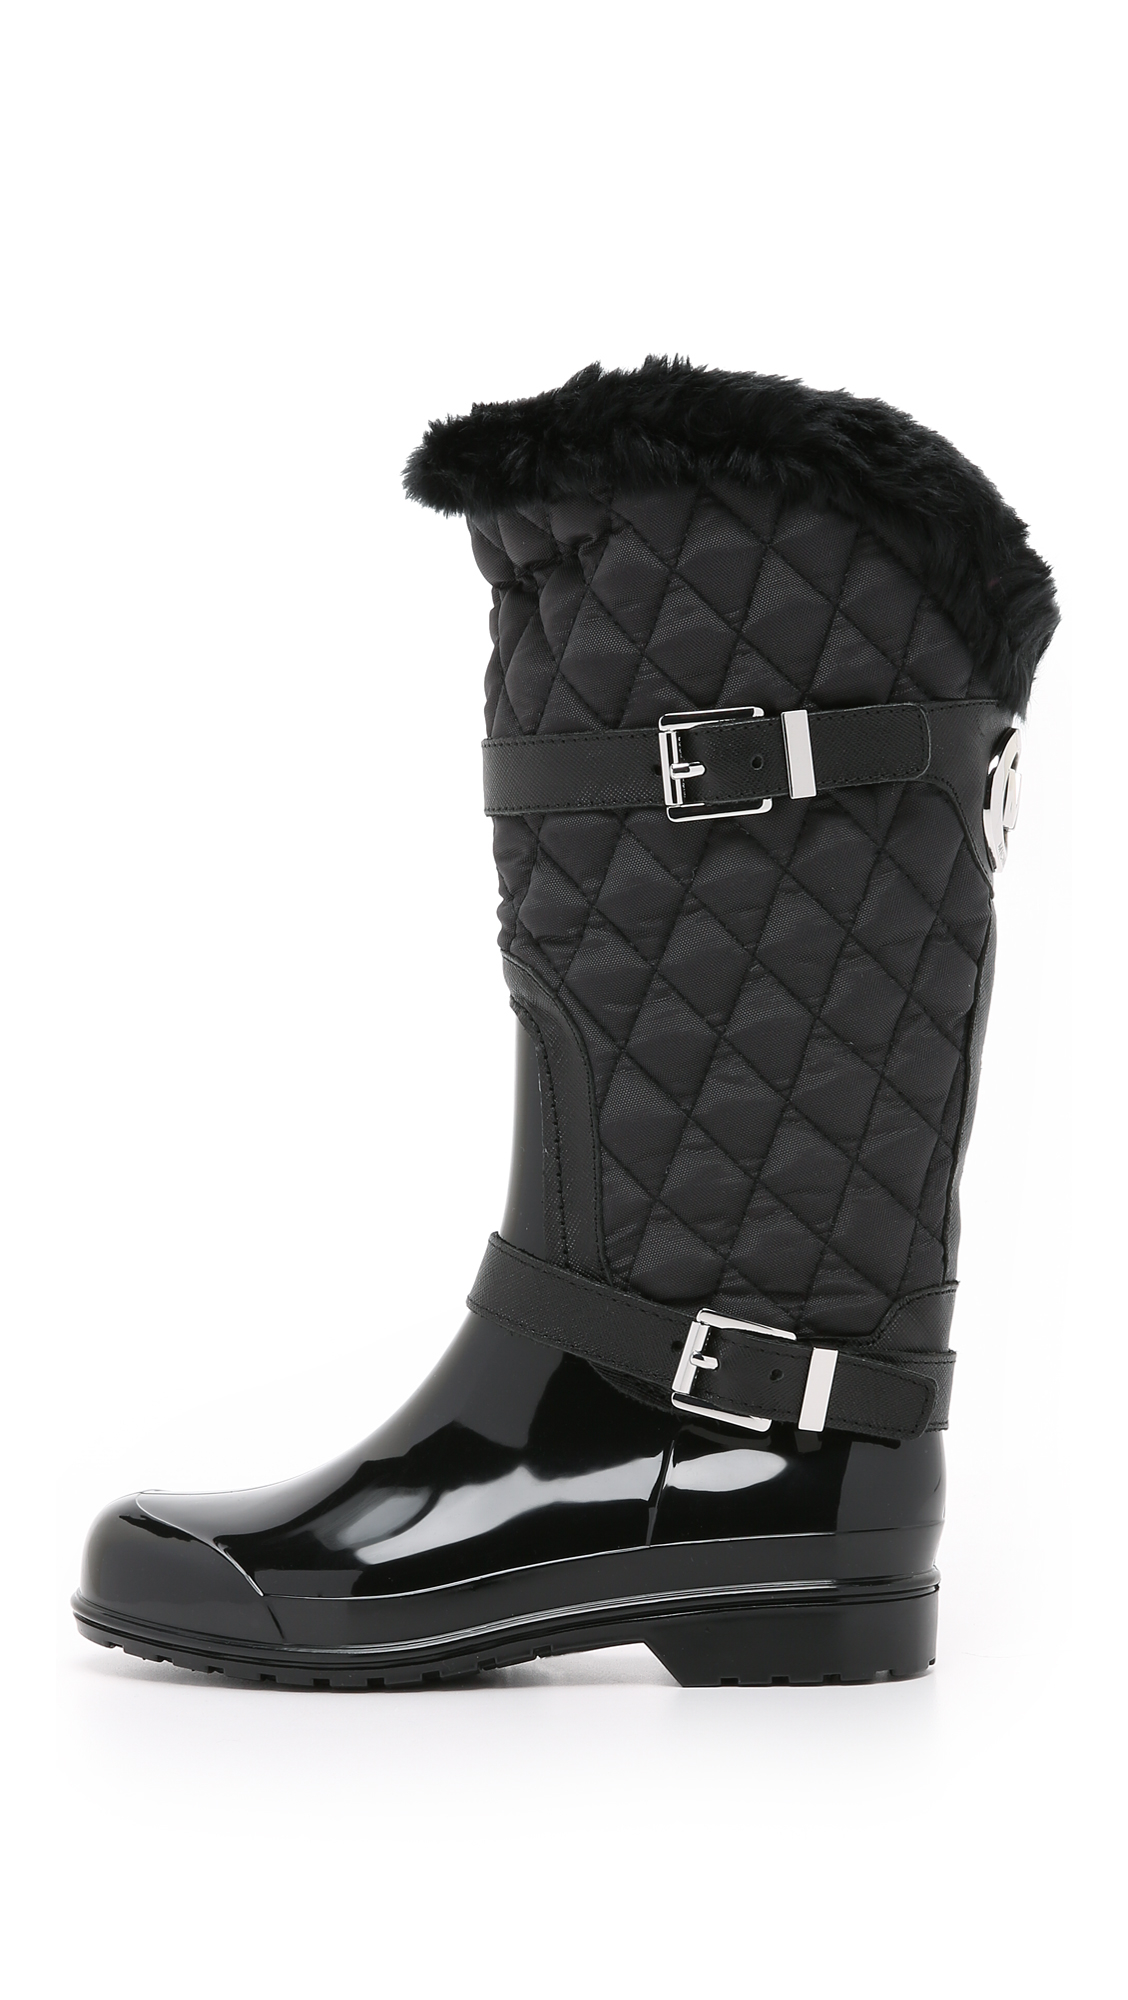 MICHAEL Michael Kors Fulton Quilted Mid Rain Boots in Black